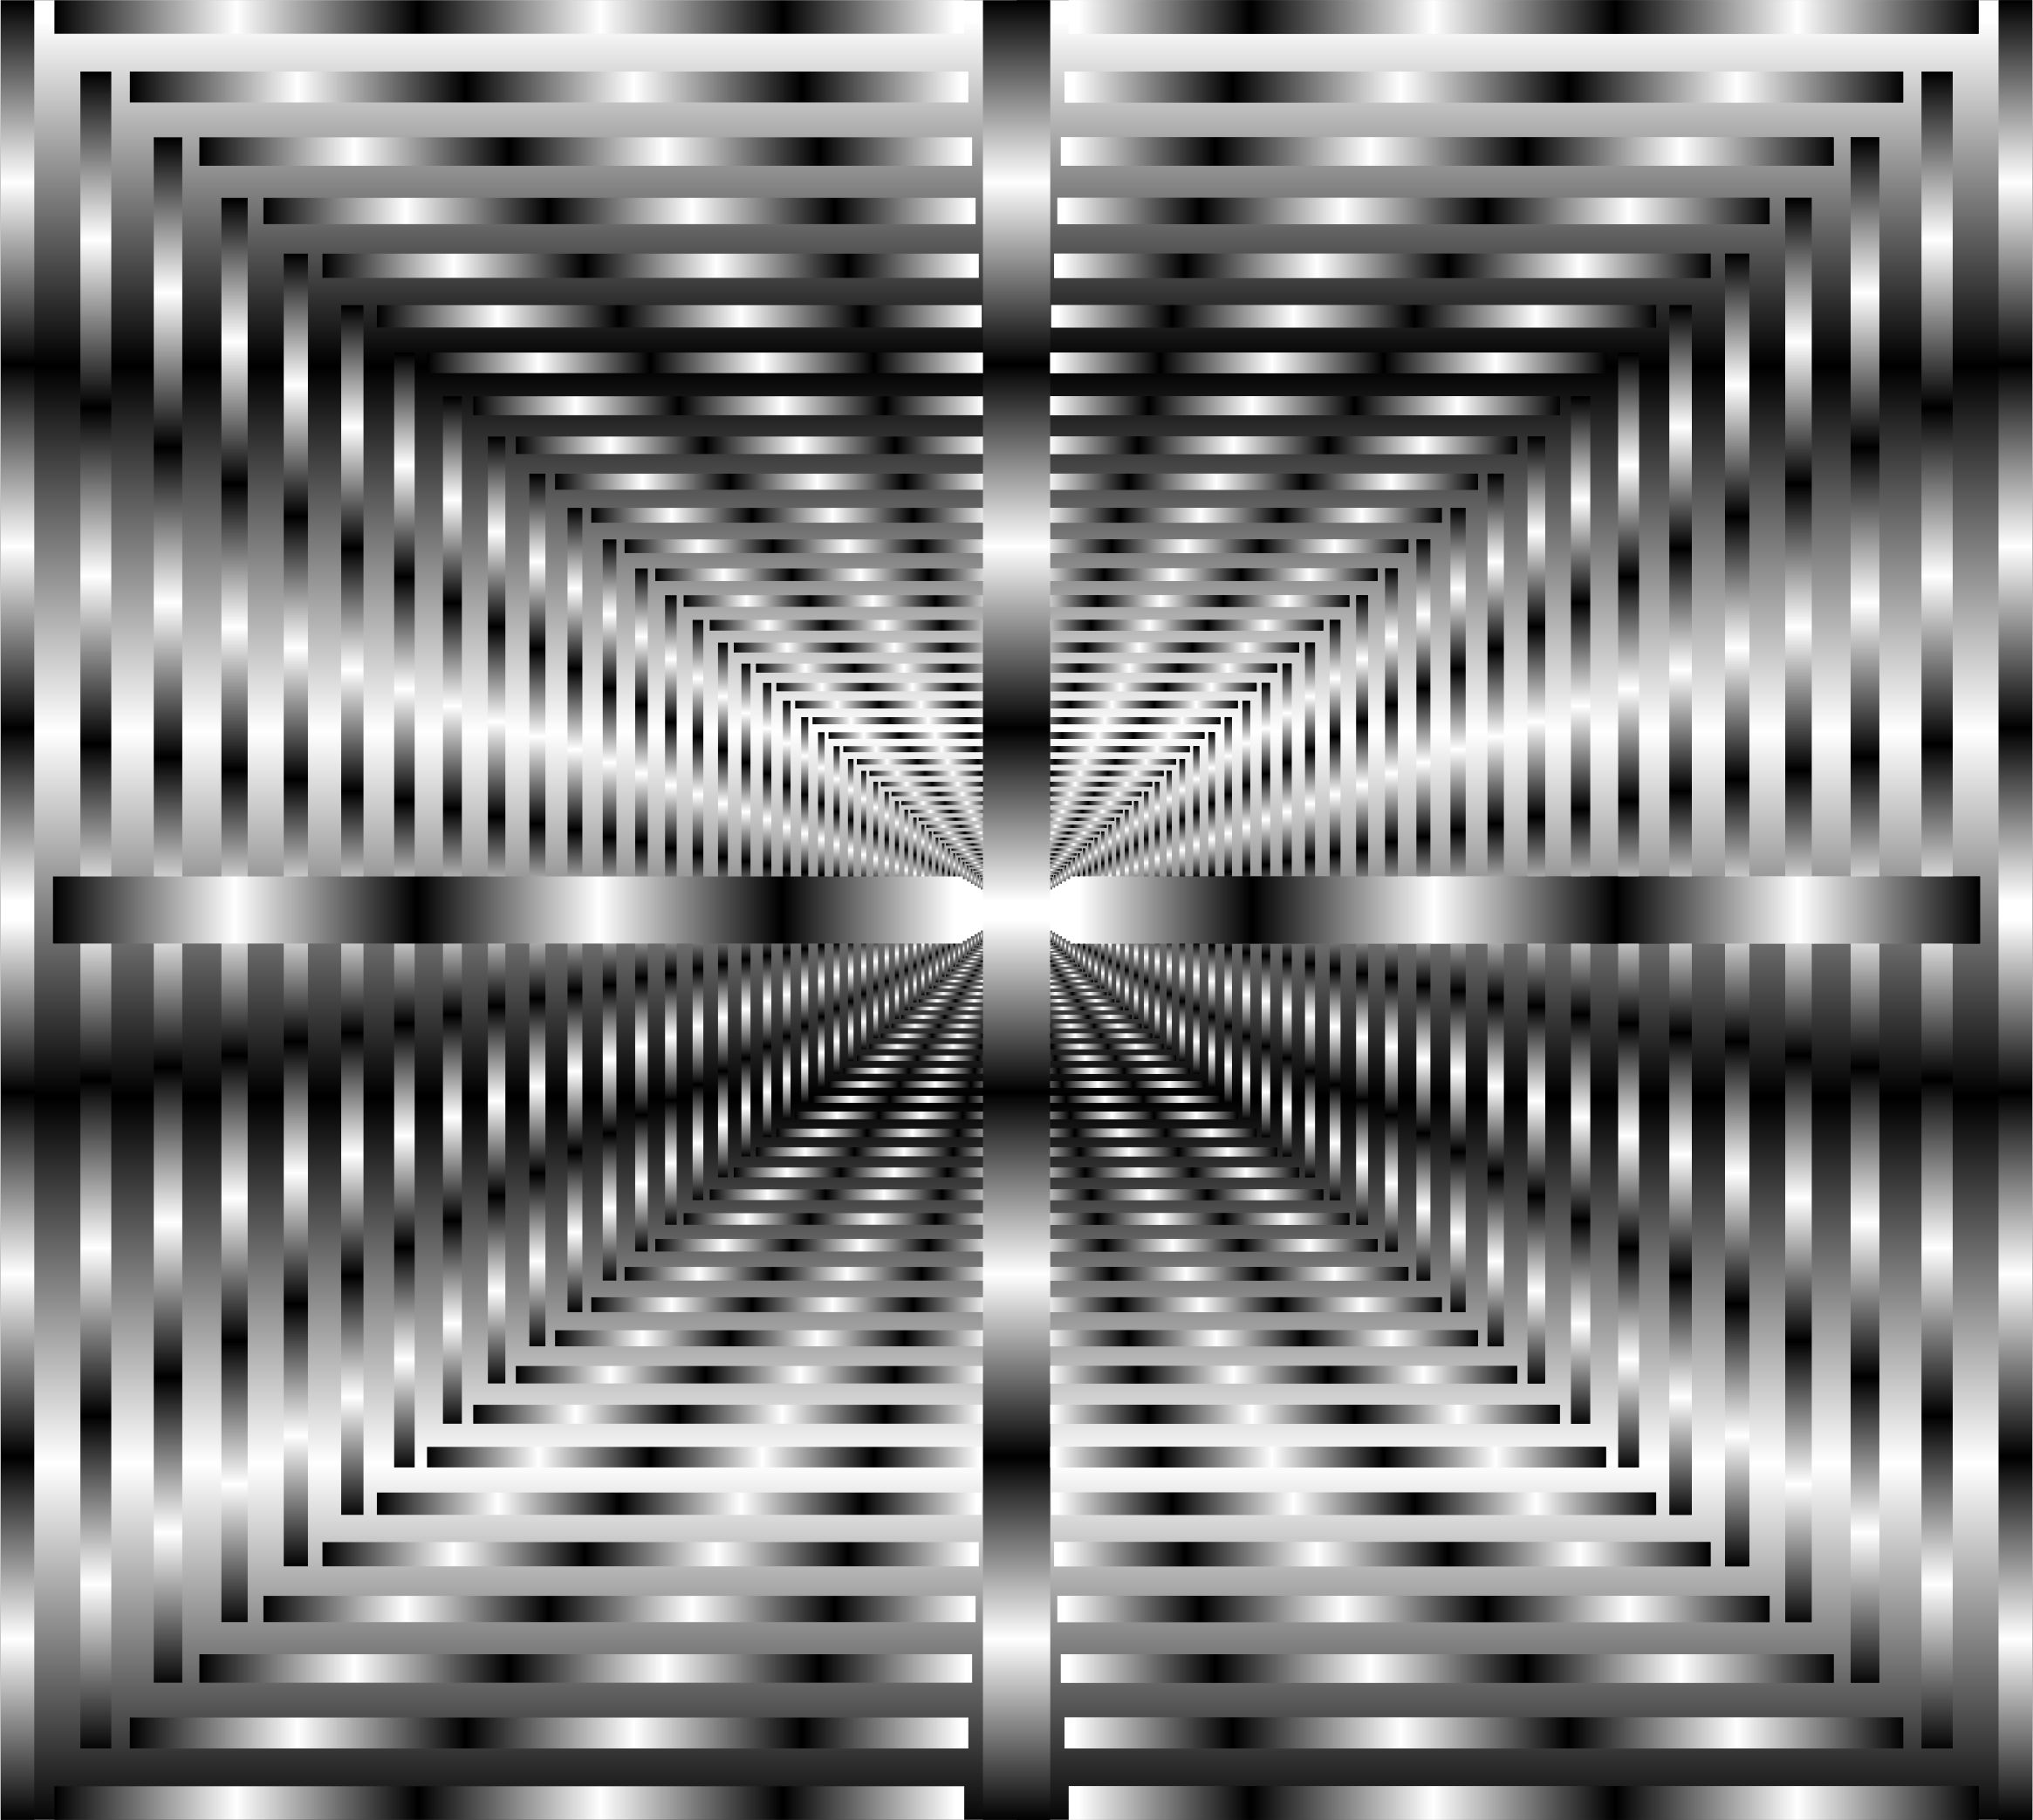 Surreal Tunnel Variation 2 by GDJ